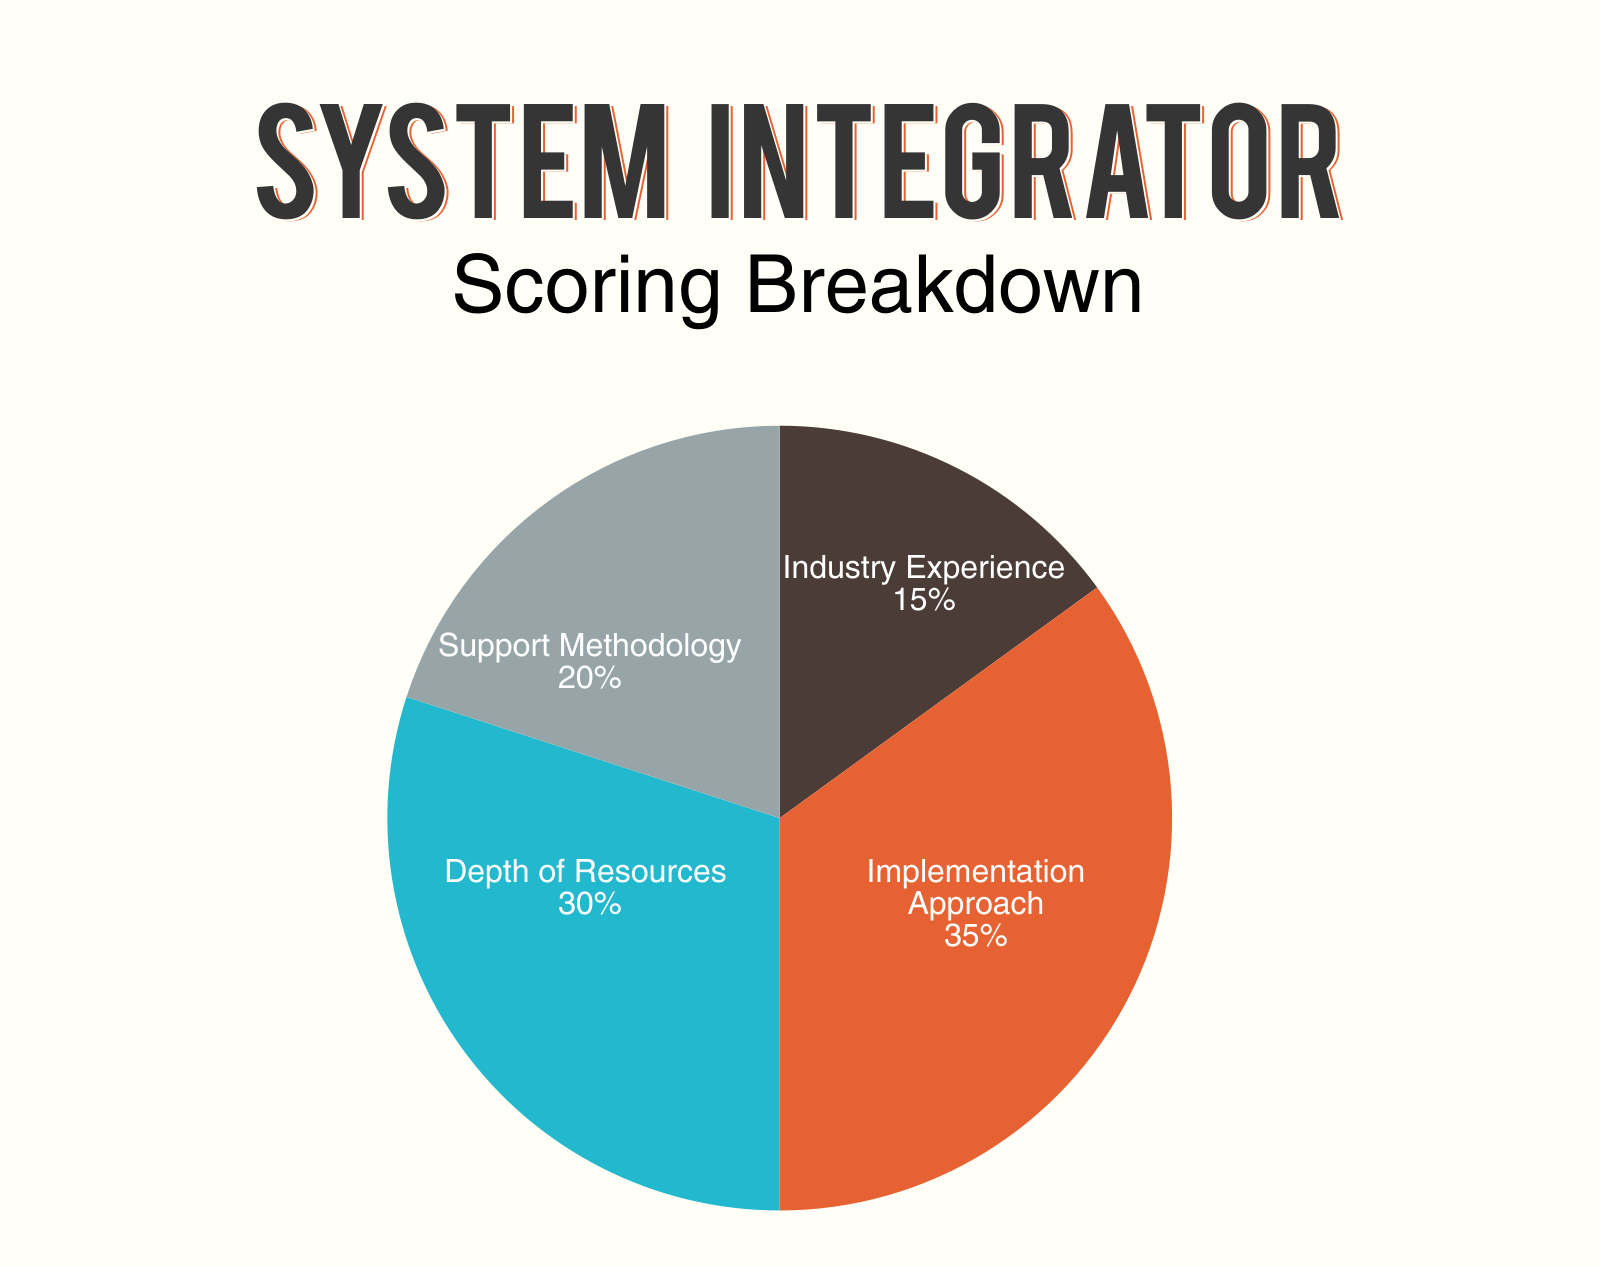 How To Select The Right System Integrator For Erp A Scorecard